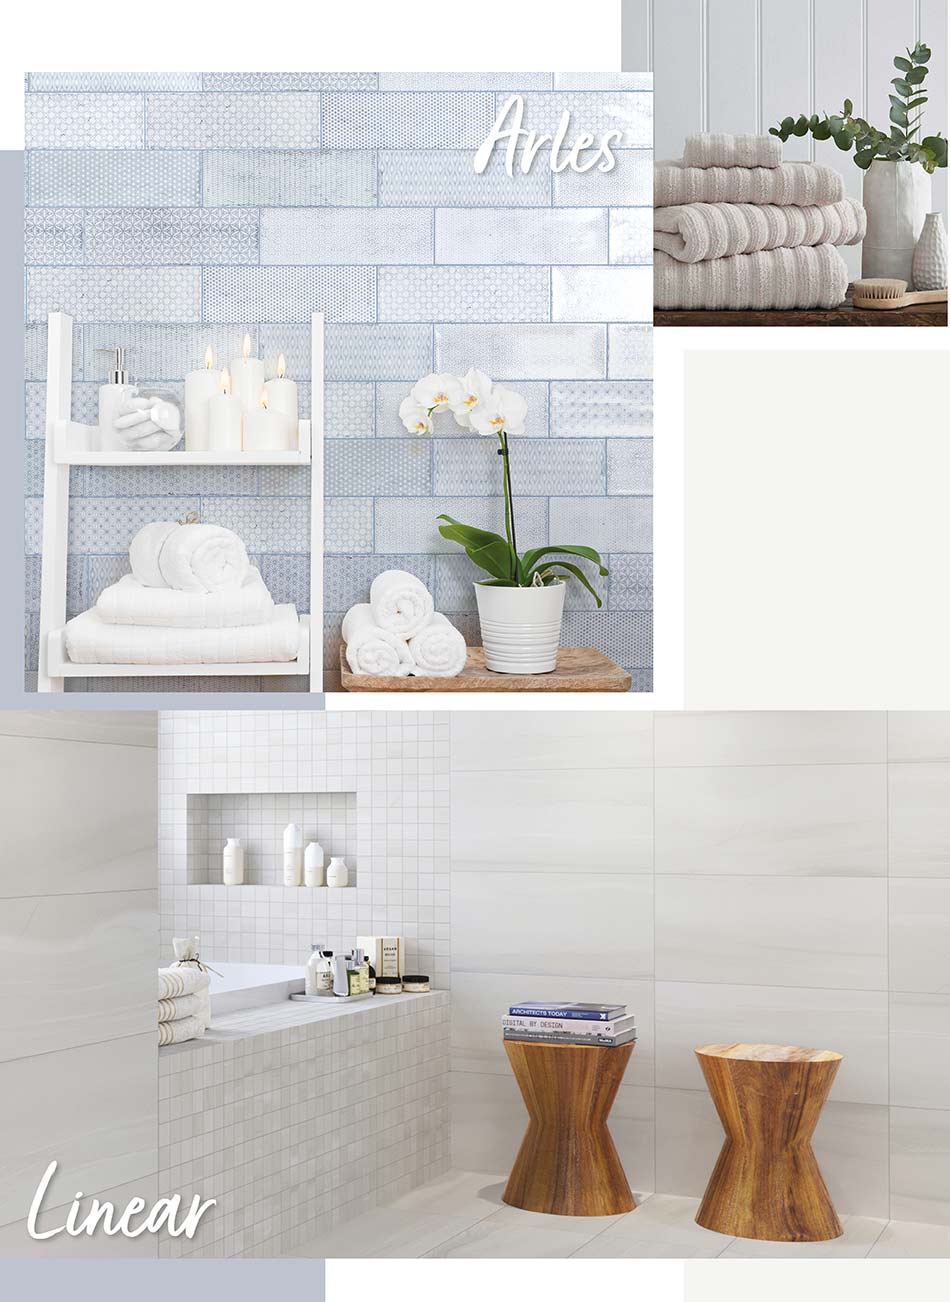 Arles and Linear Tile Collections